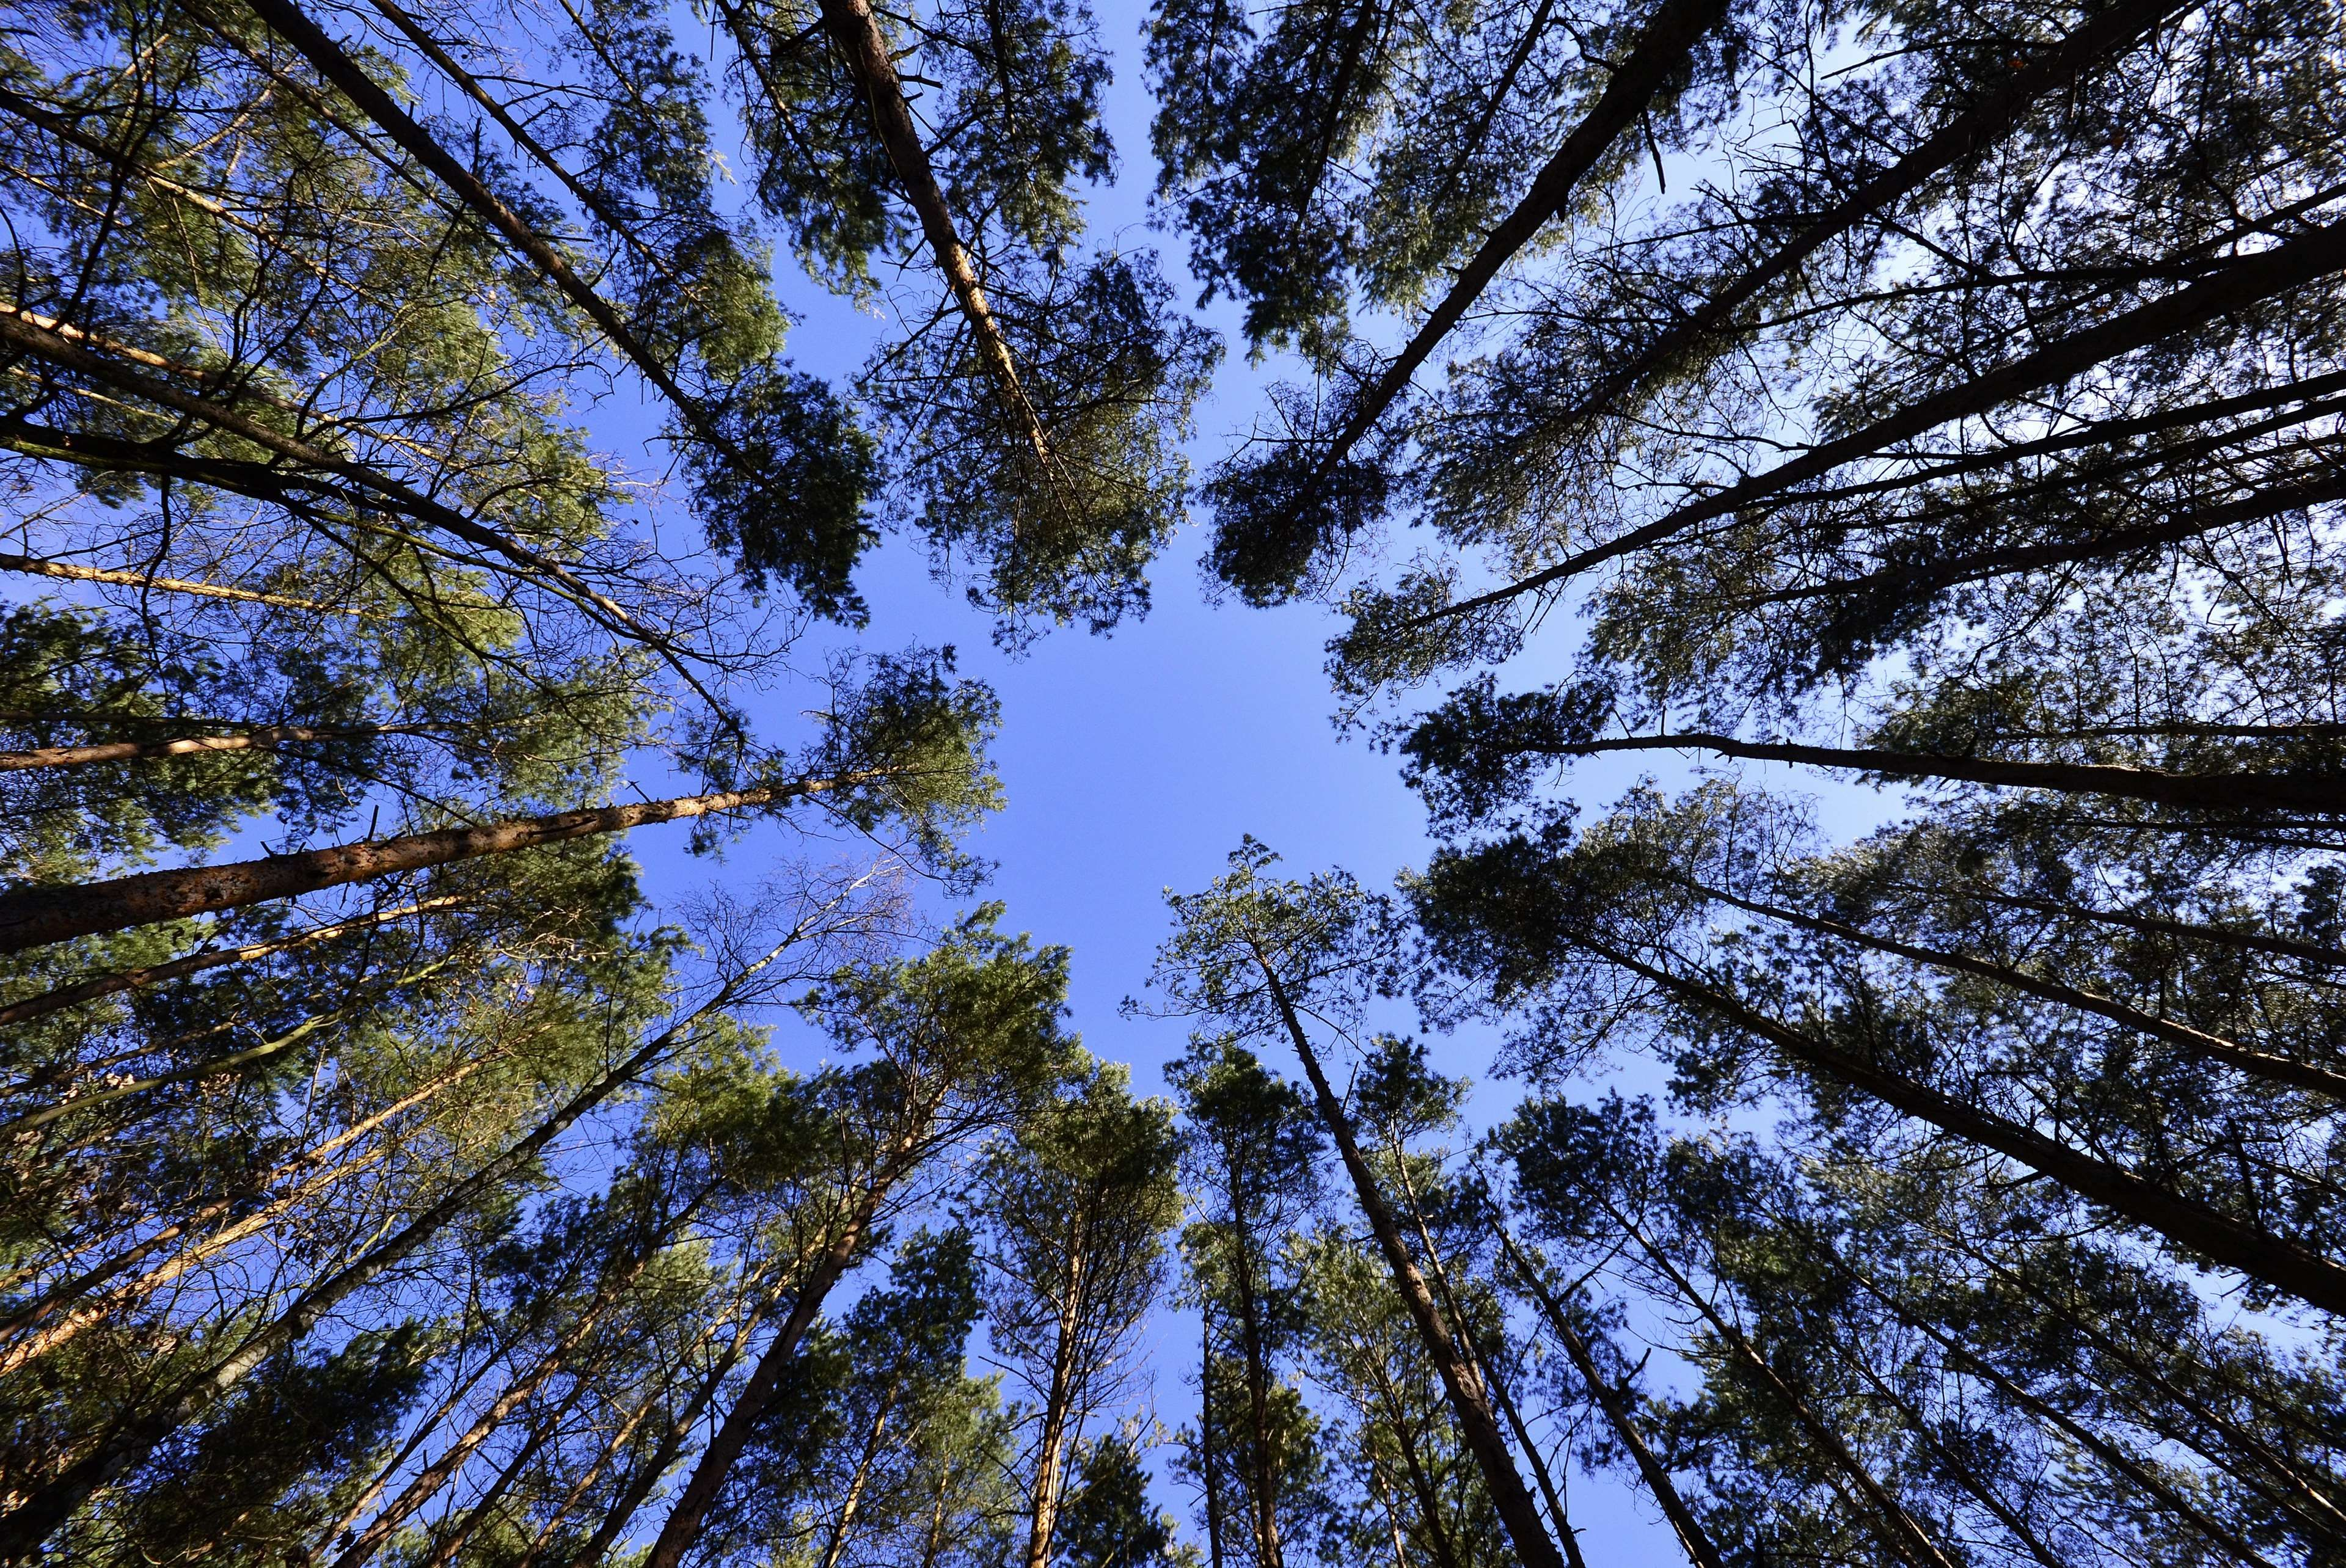 Forest Nature Sky Trees Worms Eye View 4k Wallpaper Worms